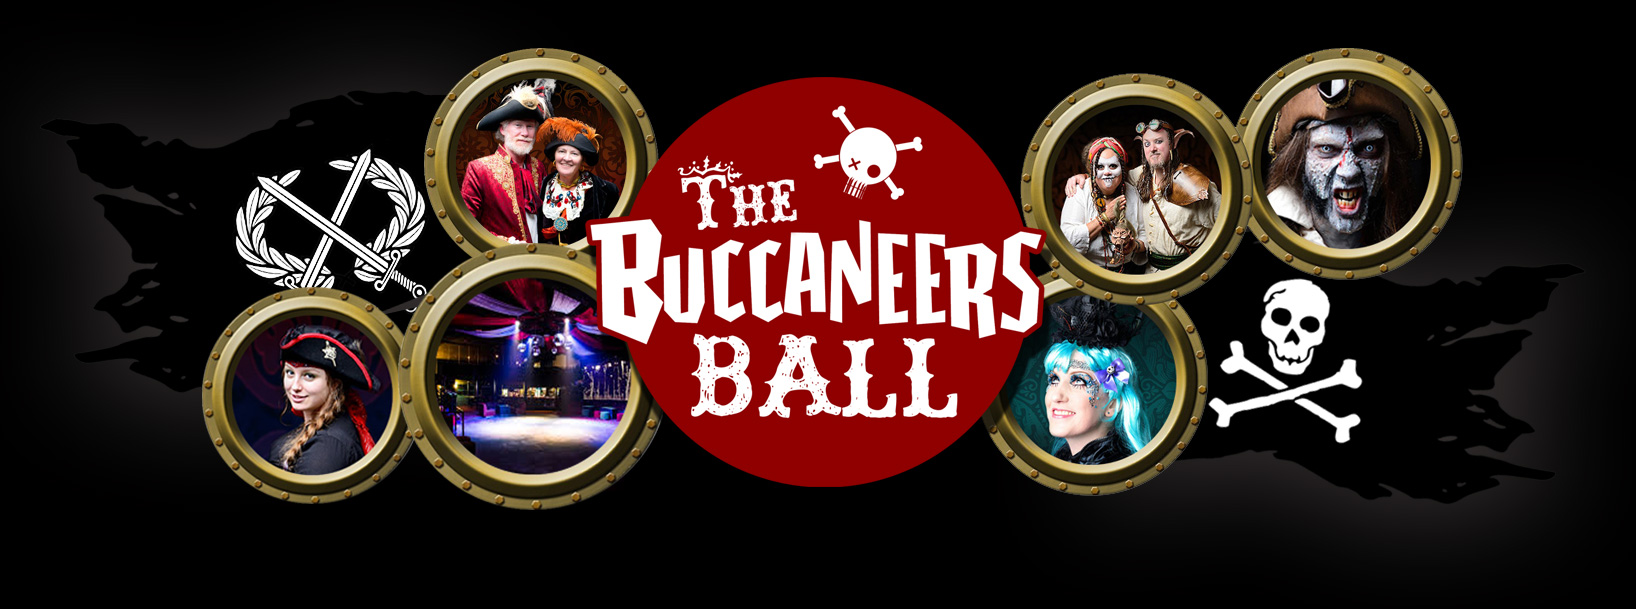 Buccaneers Ball